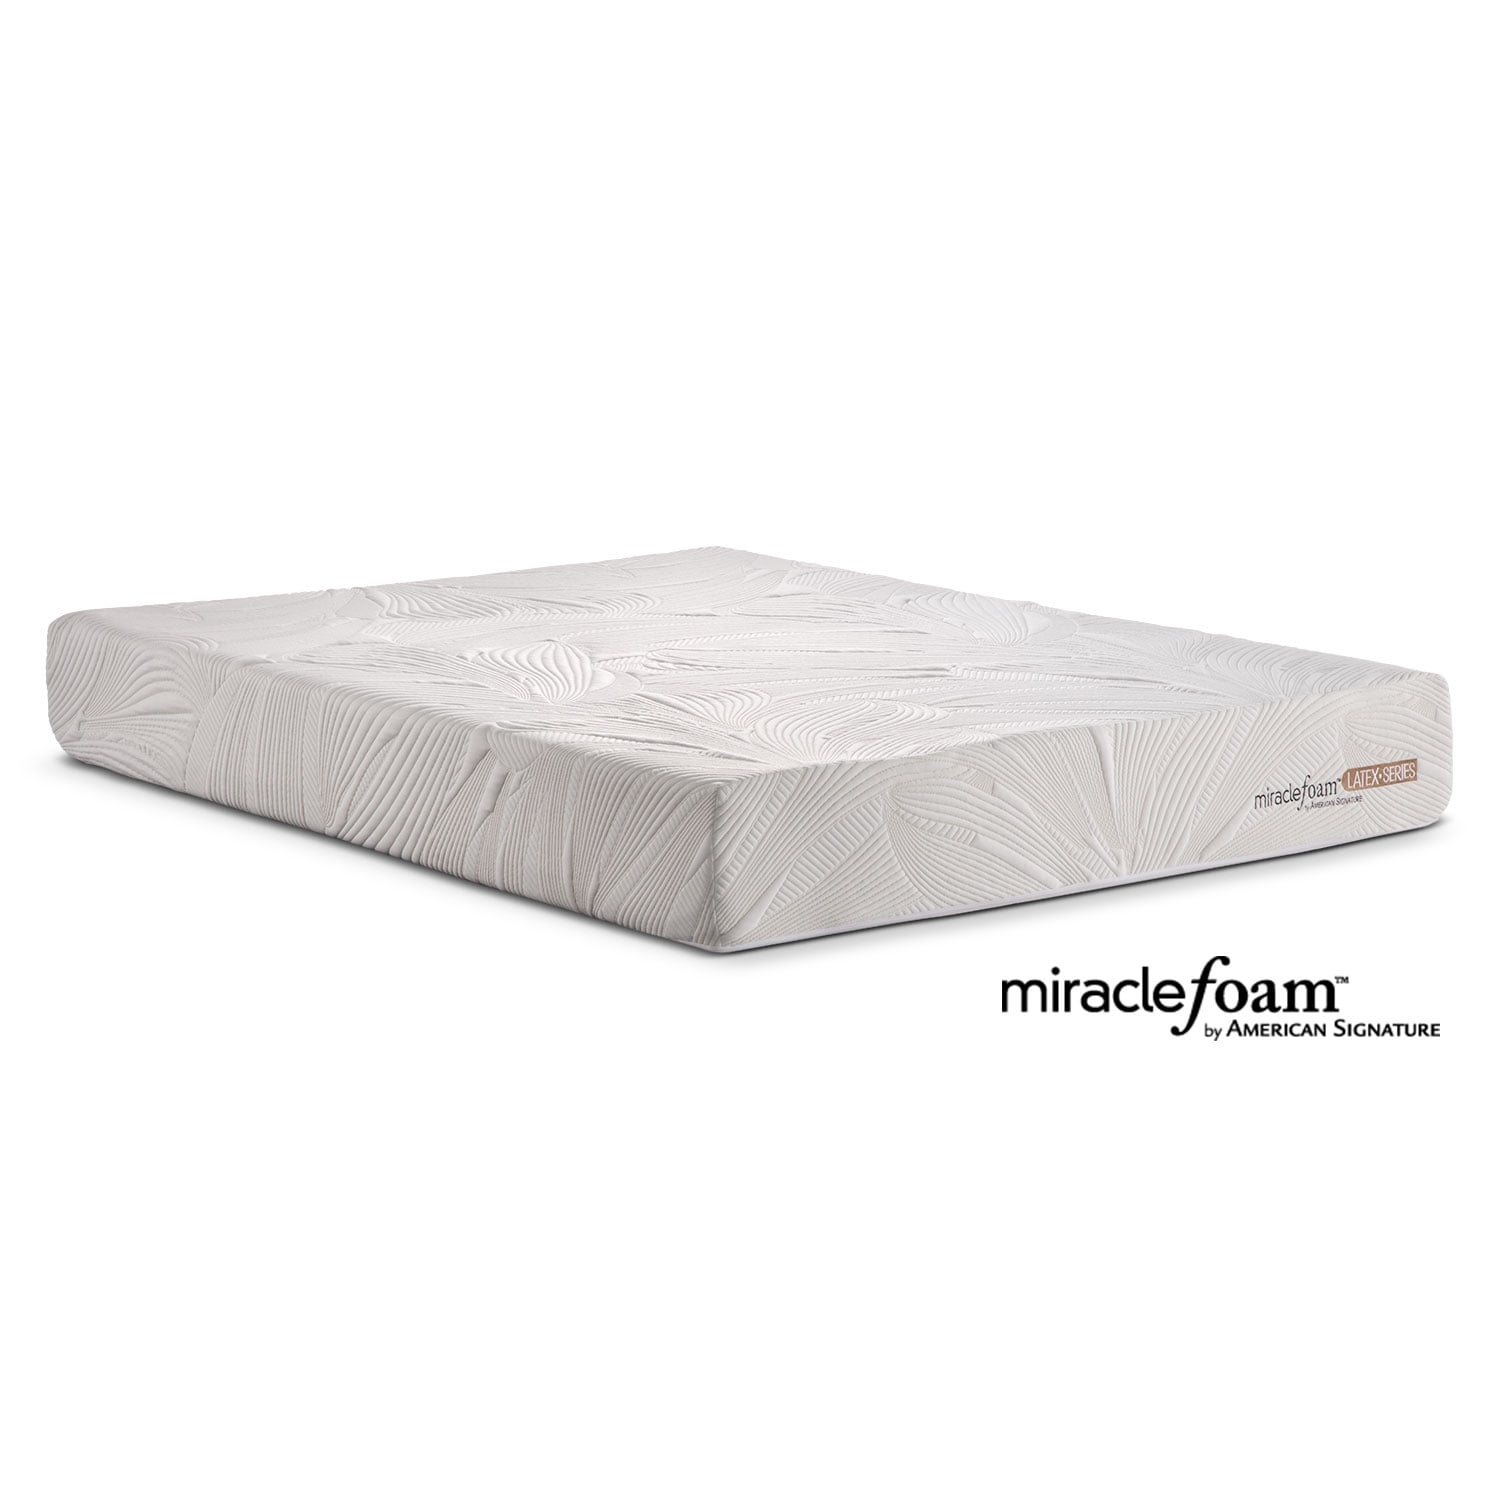 Mattresses and Bedding - Tranquil Full Mattress